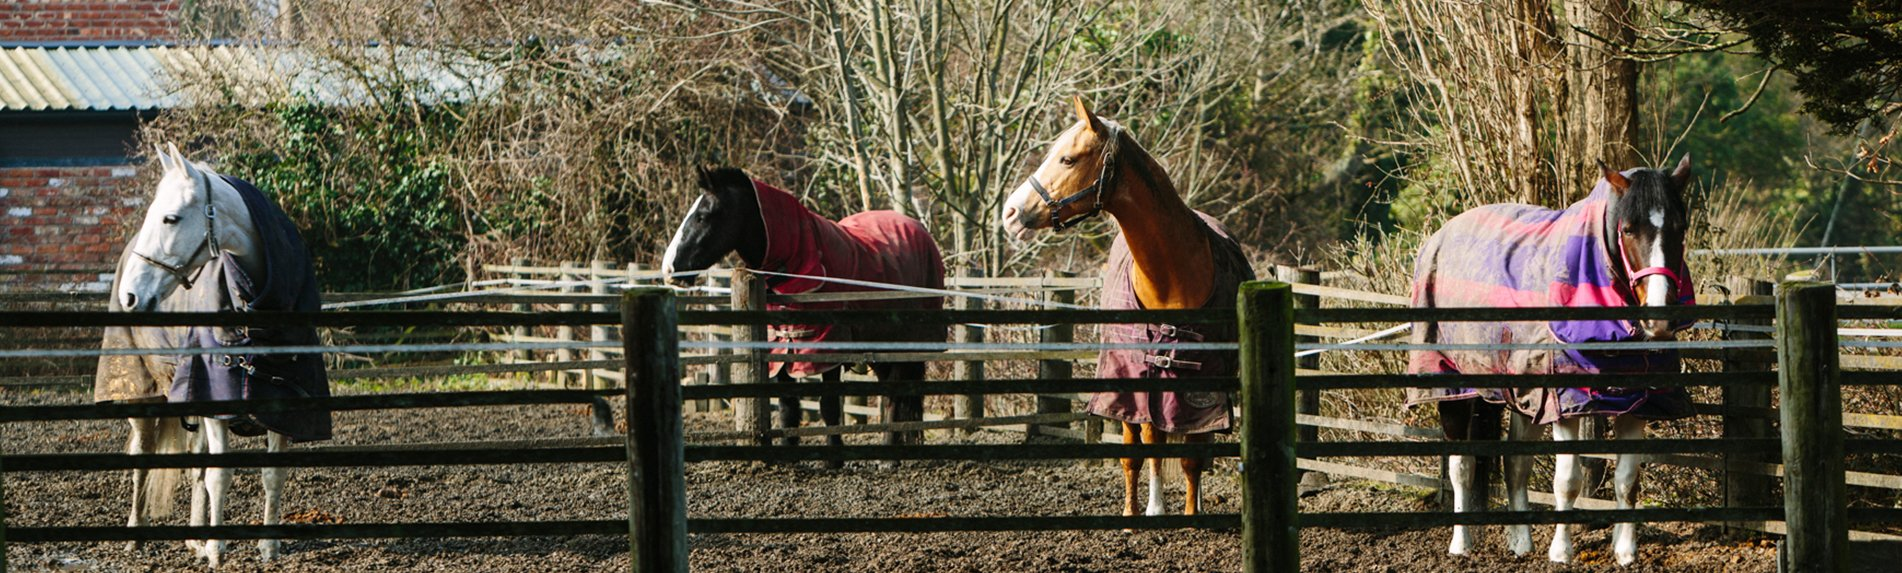 Larton Livery Horse Stables & Turnout